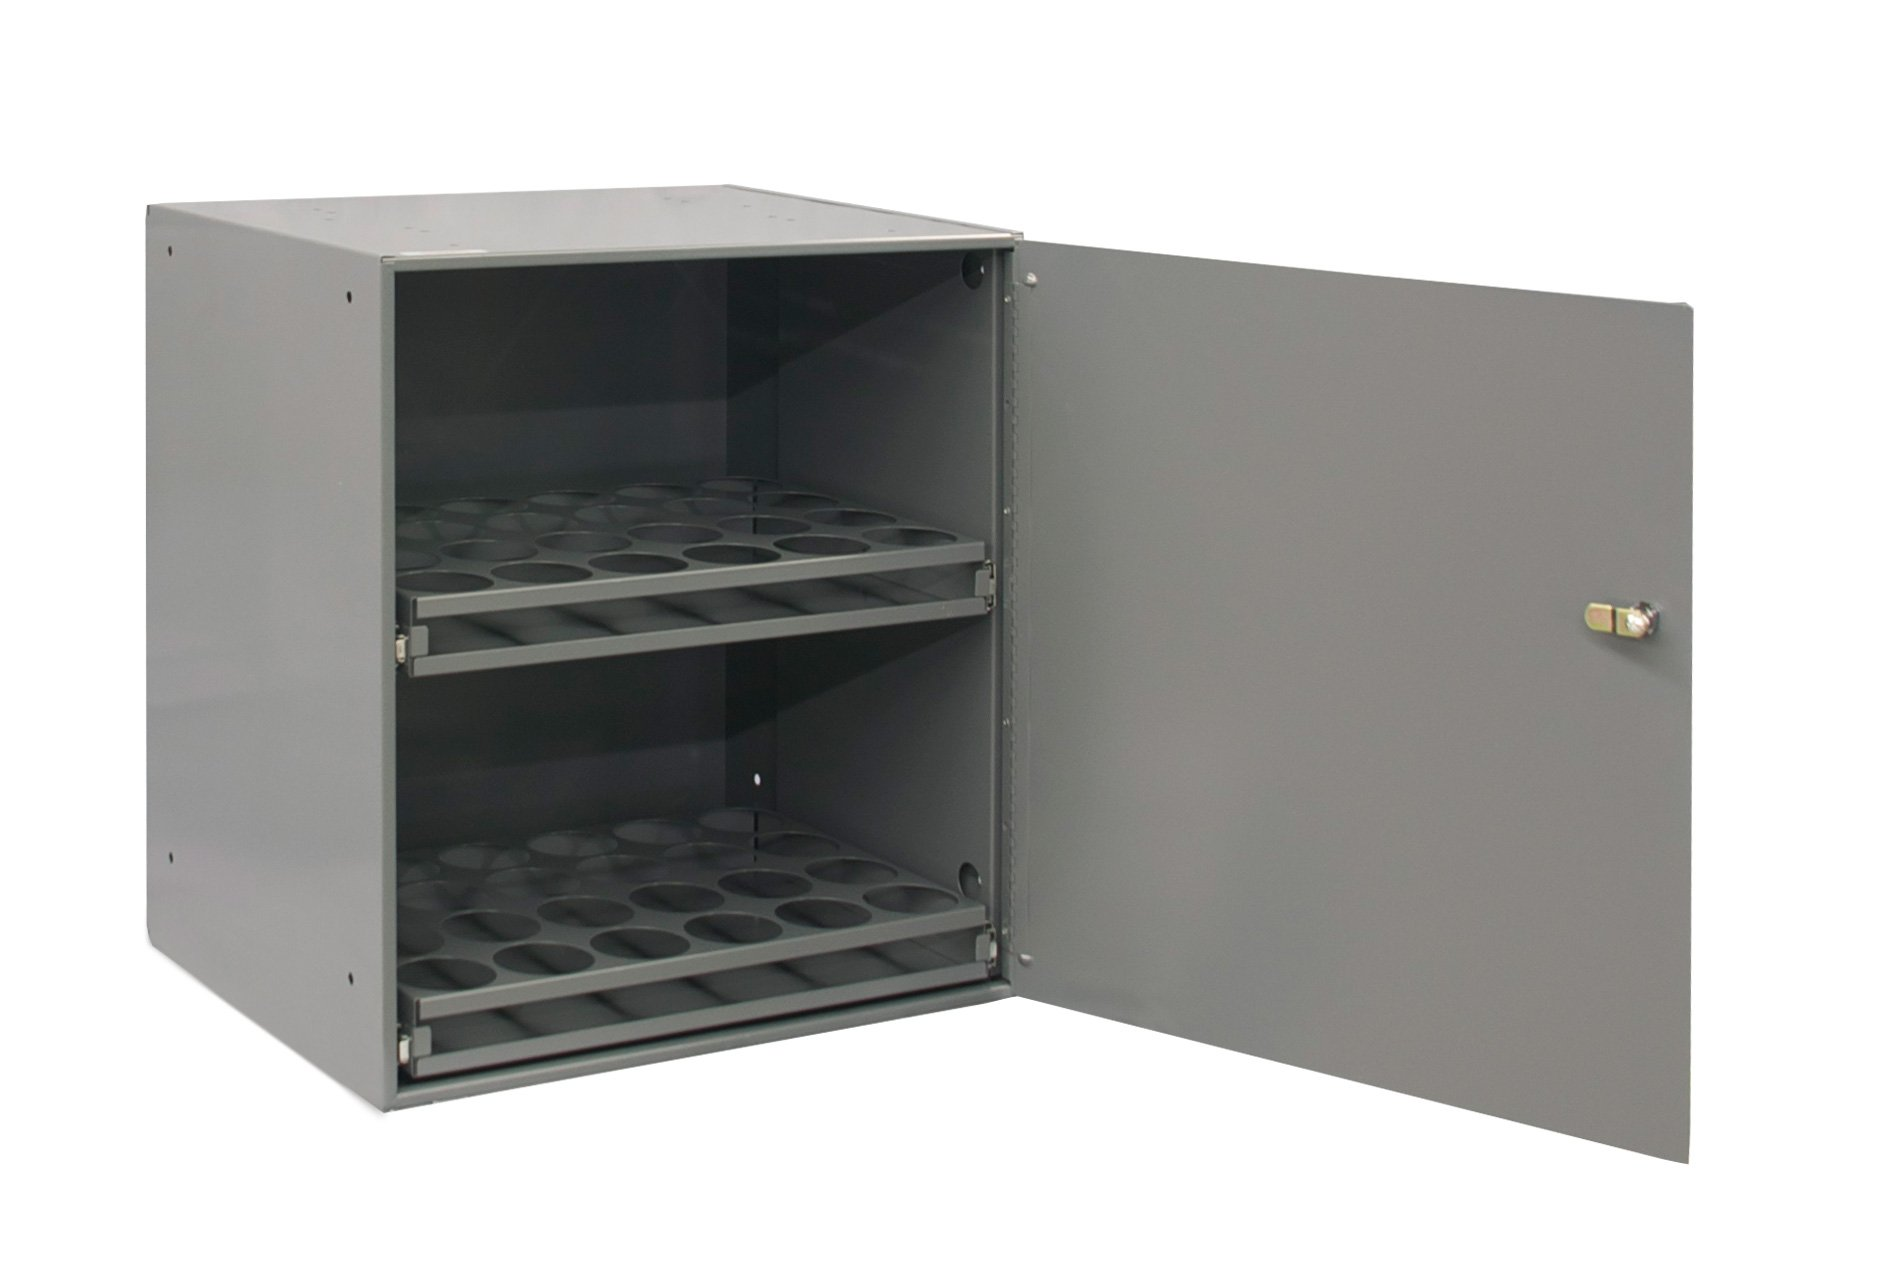 """Durham 300-95 Prime Cold Rolled Steel Aerosol Storage Cabinet, 2 Shelves, 15-15/16"""" Length x 20-5/16"""" Width x 21-7/8"""" Height, Gray Powder Coat Finish"""